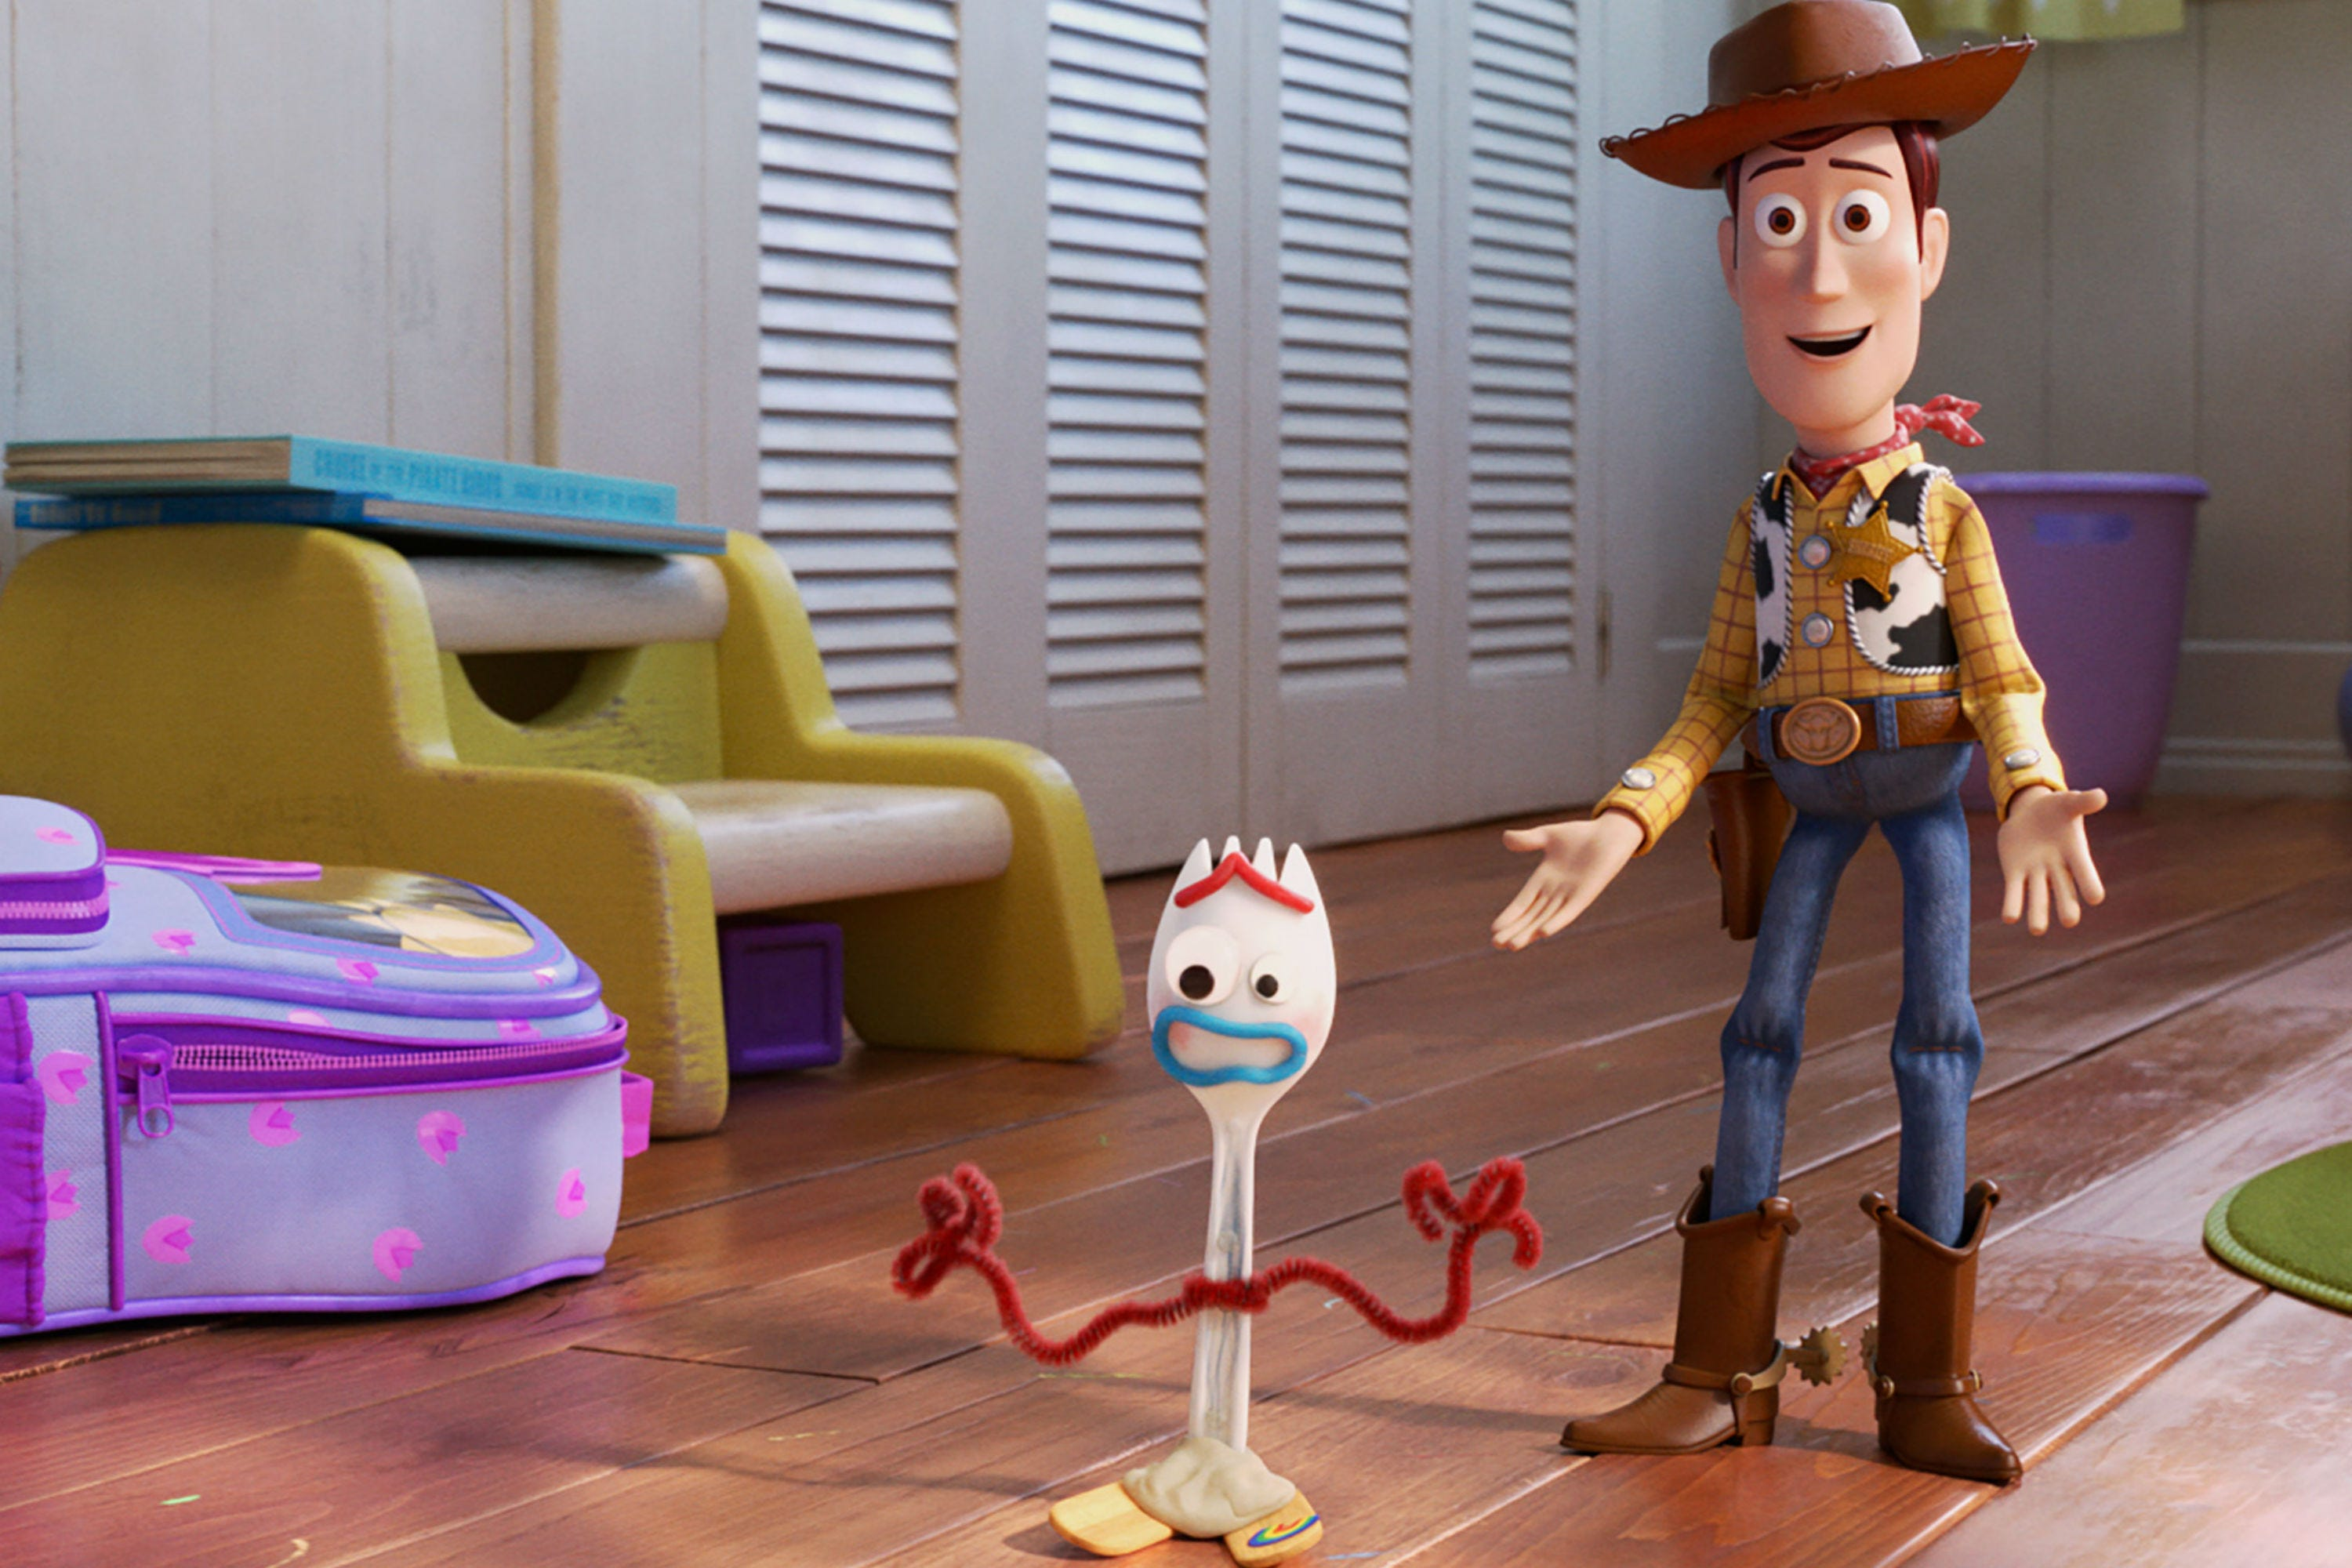 Toy Story 4 Is Giving The Internet All The Feelings